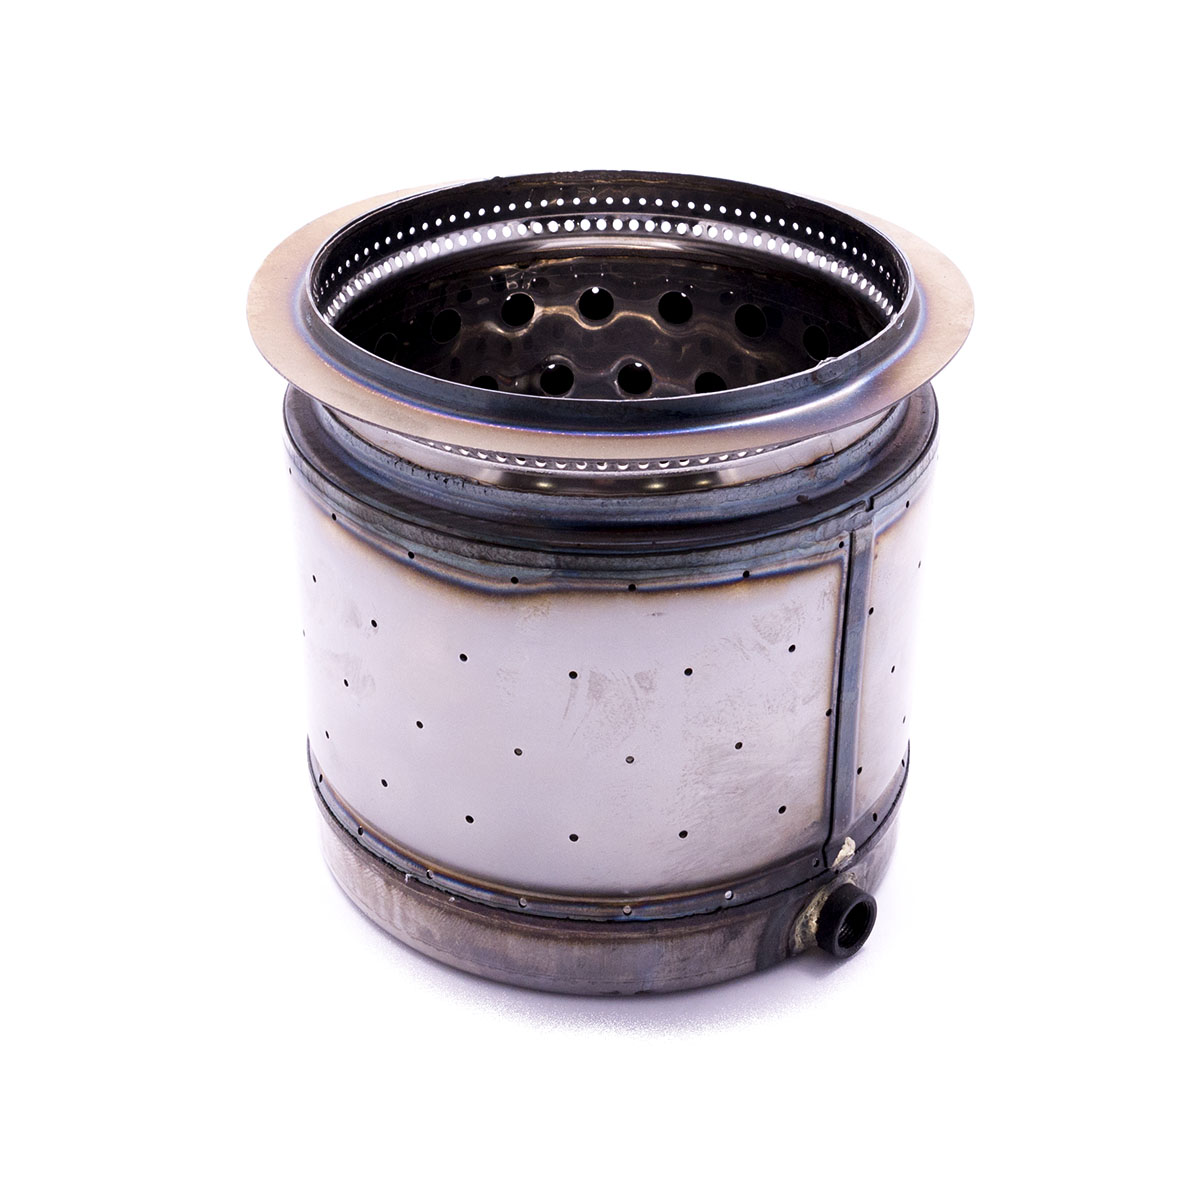 "Burn Pot Replacement for 8"" Kuma Oil Stoves"